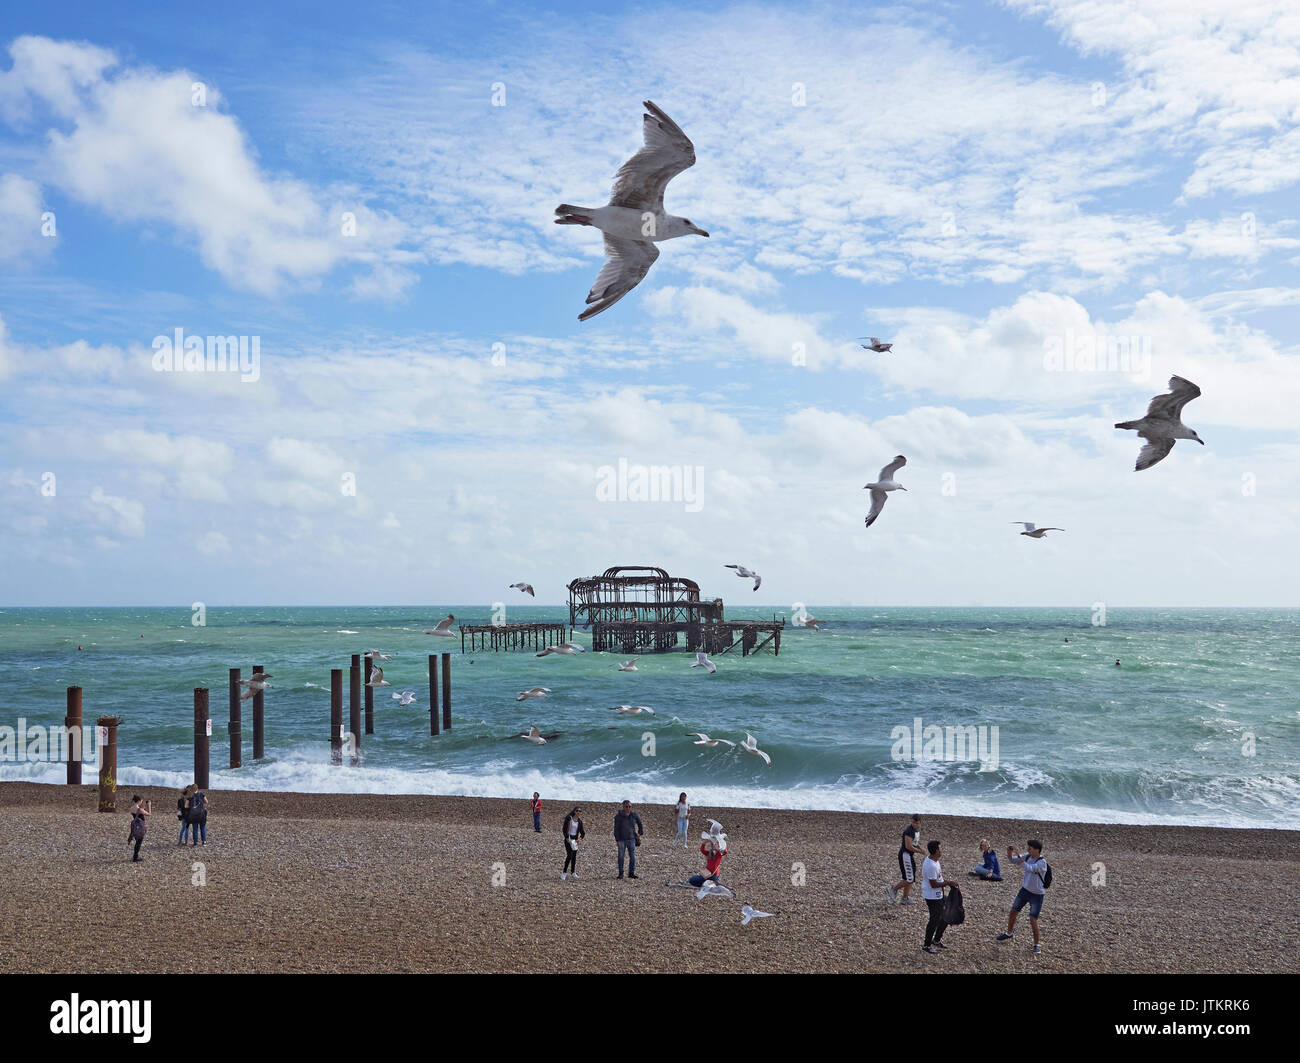 Brighton beach and the remains off the West pier with people enjoying the beach and sun with the local seagulls Stock Photo